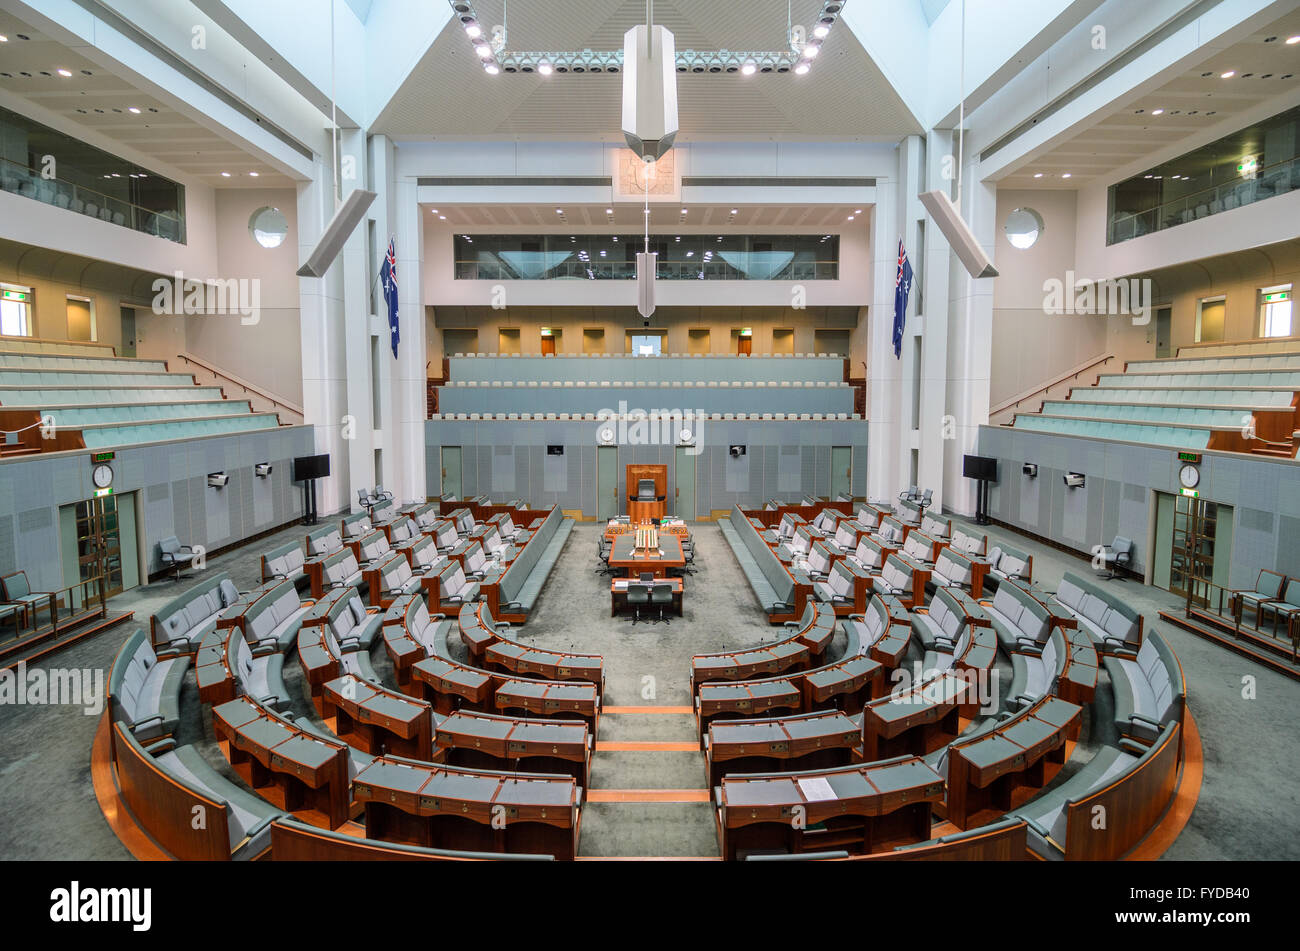 inside the parliament building in canberra australia FYDB40 - 38+ Australian Parliament House Canberra Pictures  Pictures